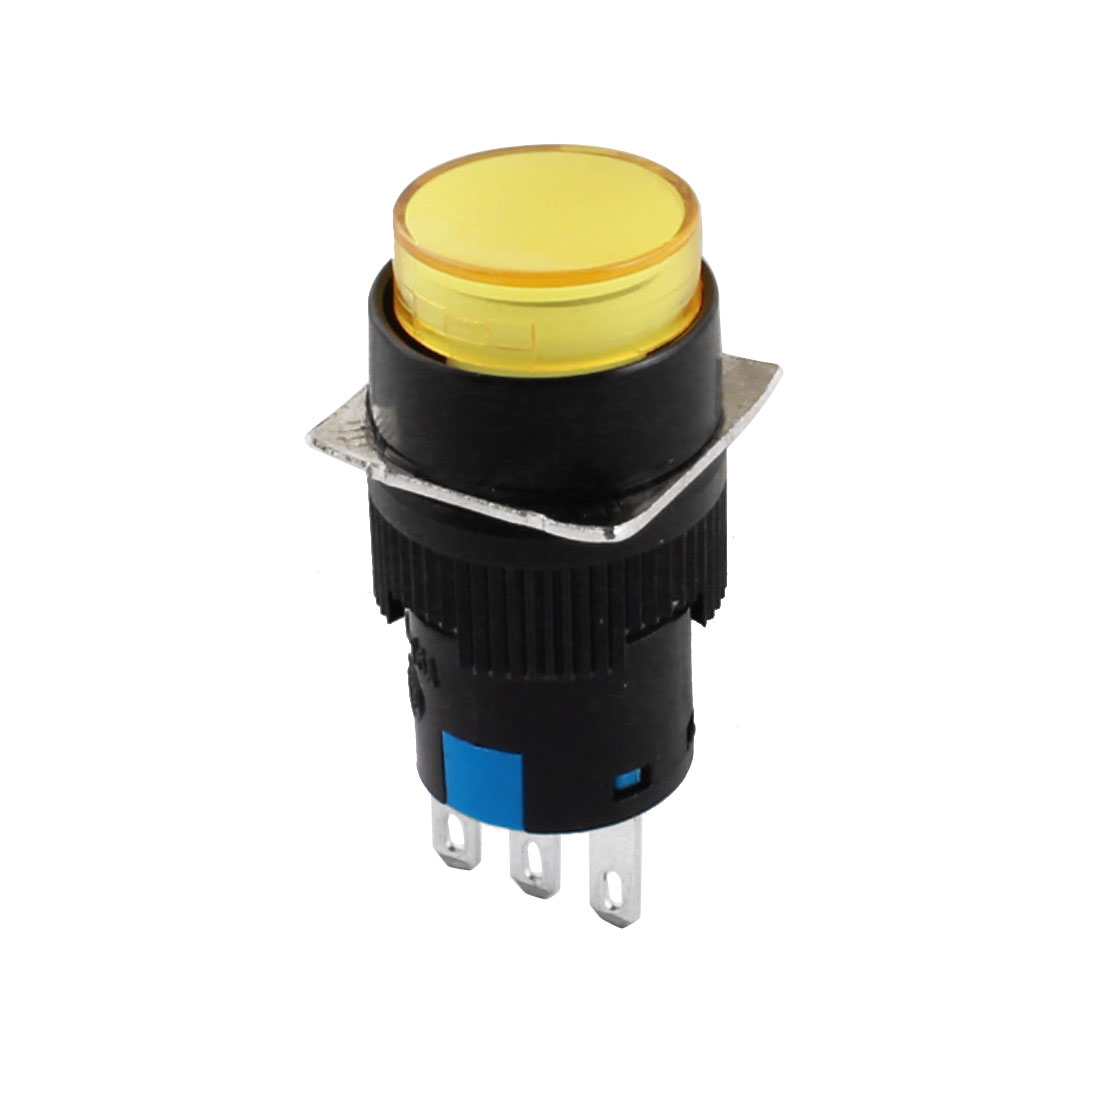 Yellow 3Pins 16mm Threaded Panel Mounted SPDT Momentary Round Pushbutton Switch w 3 x Crimp Terminals